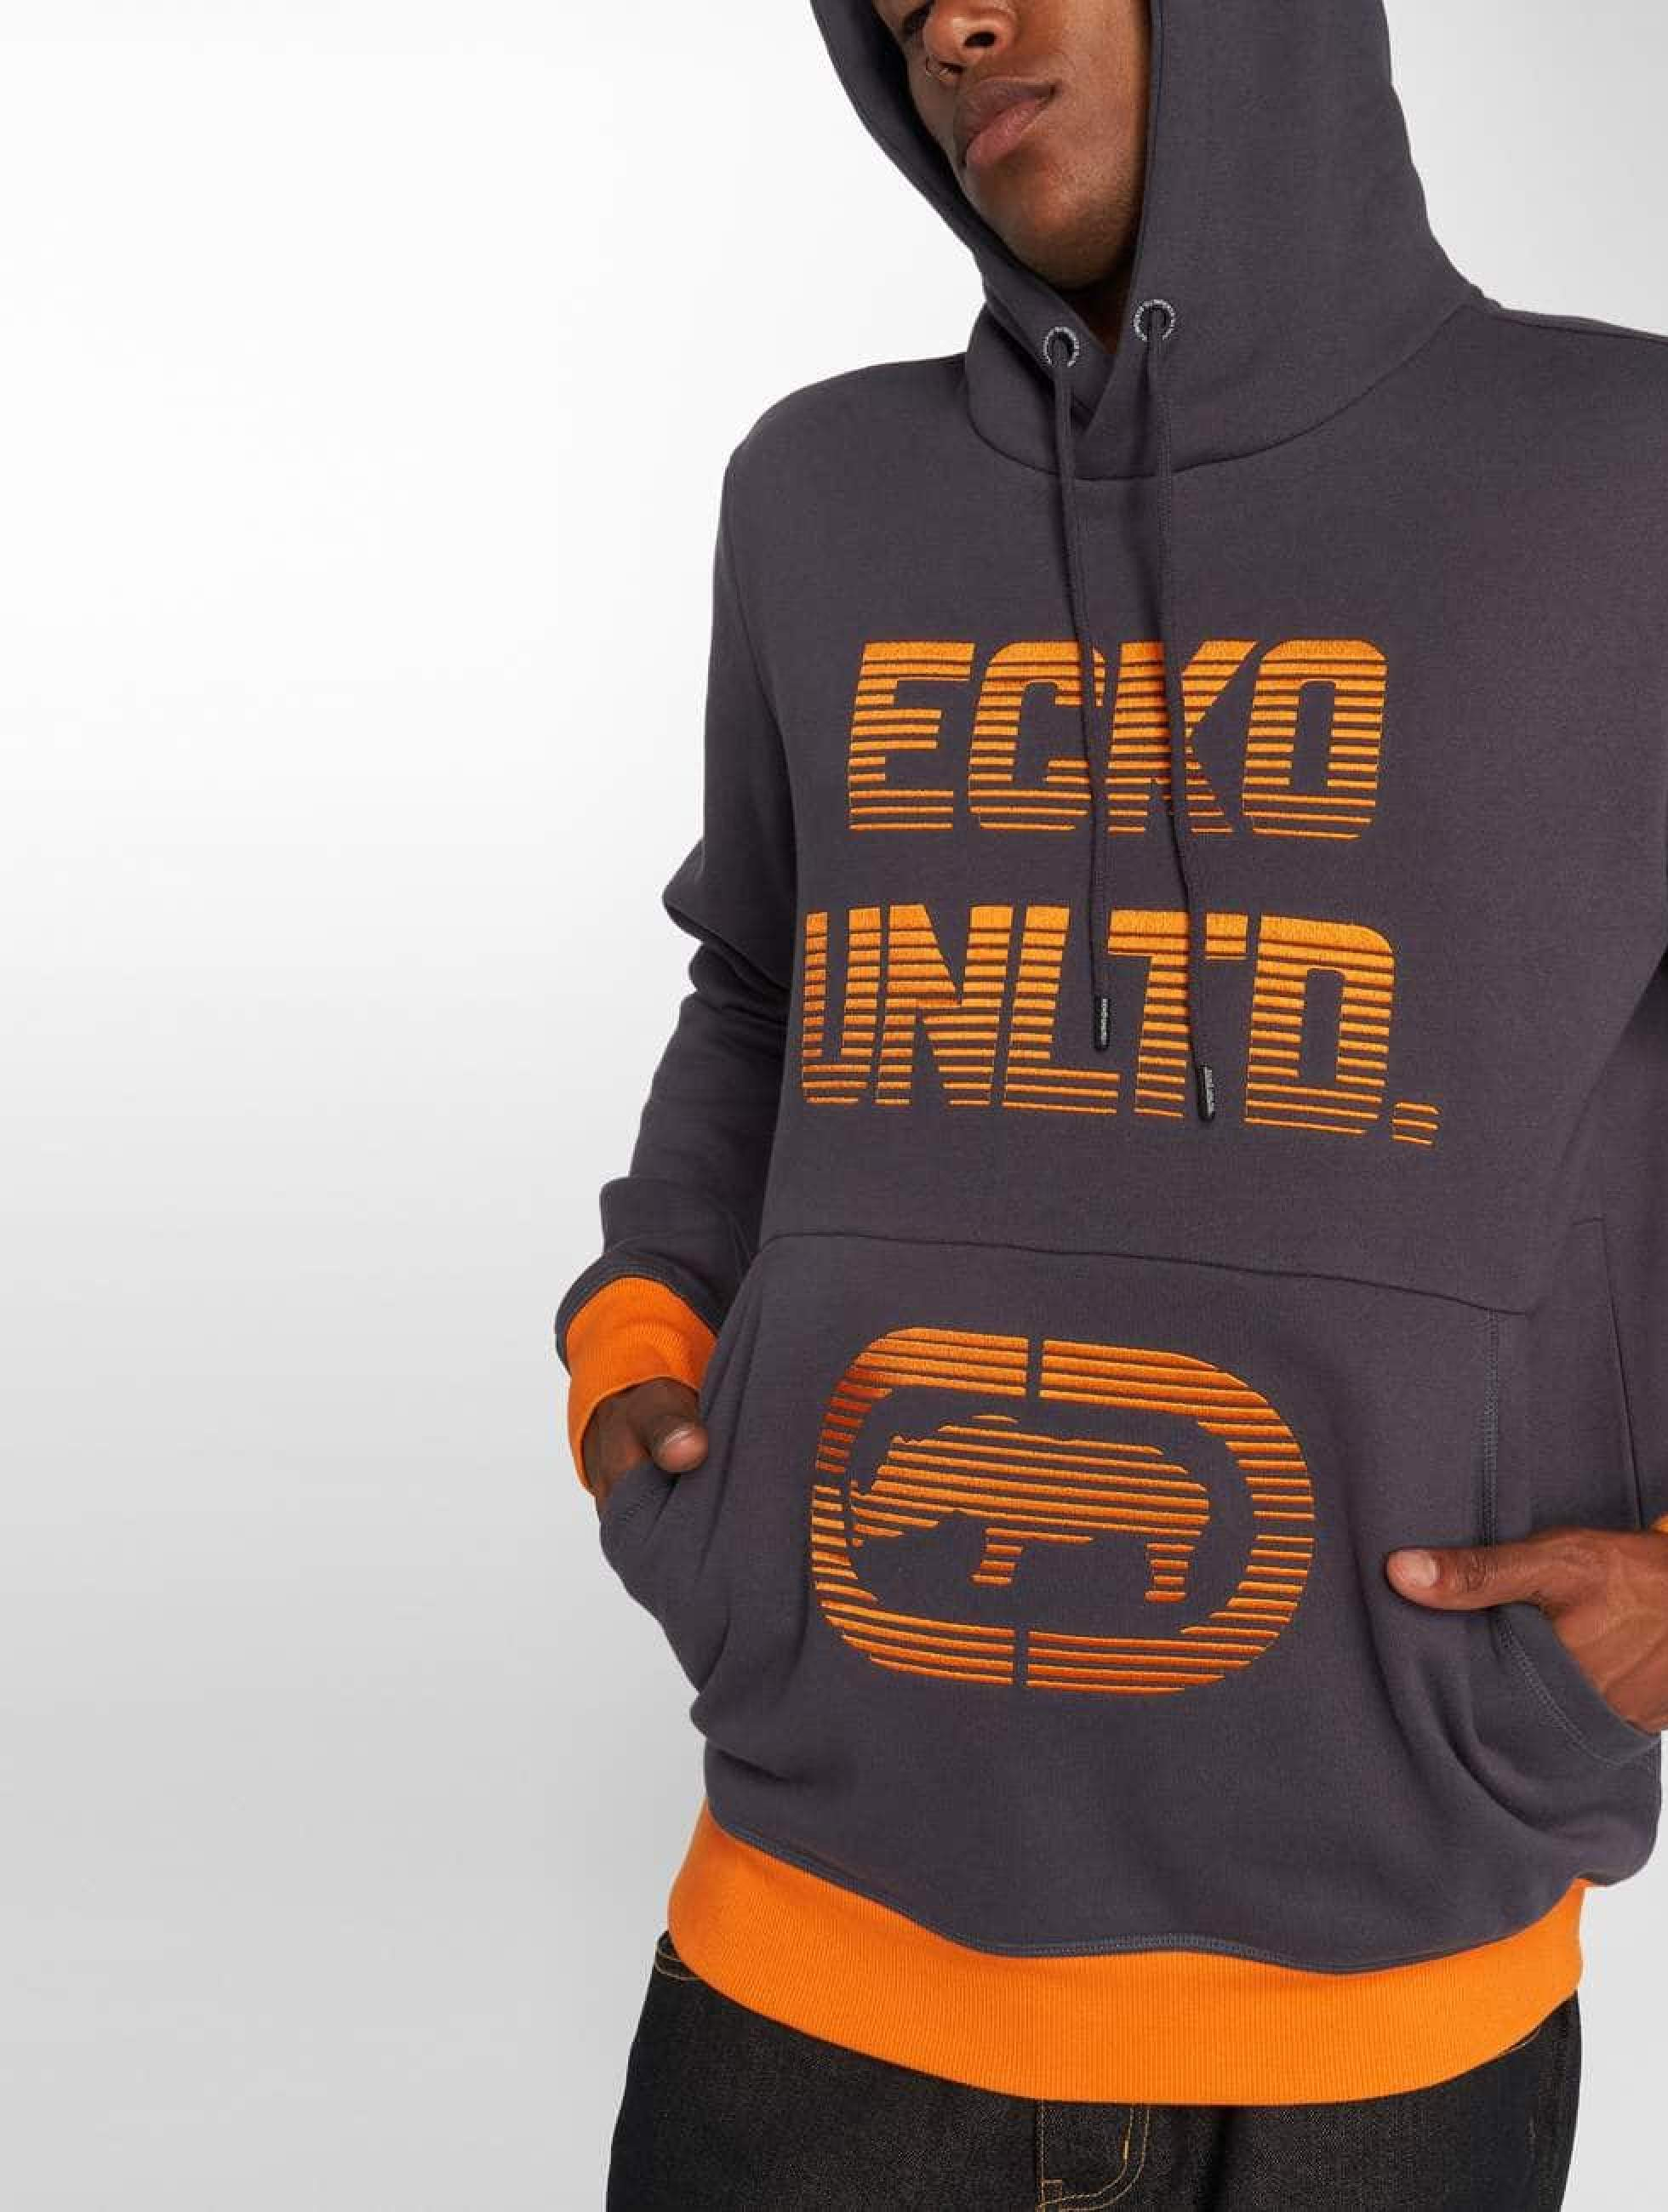 Ecko Unltd. / Hoodie Arizona Mills in grey 4XL